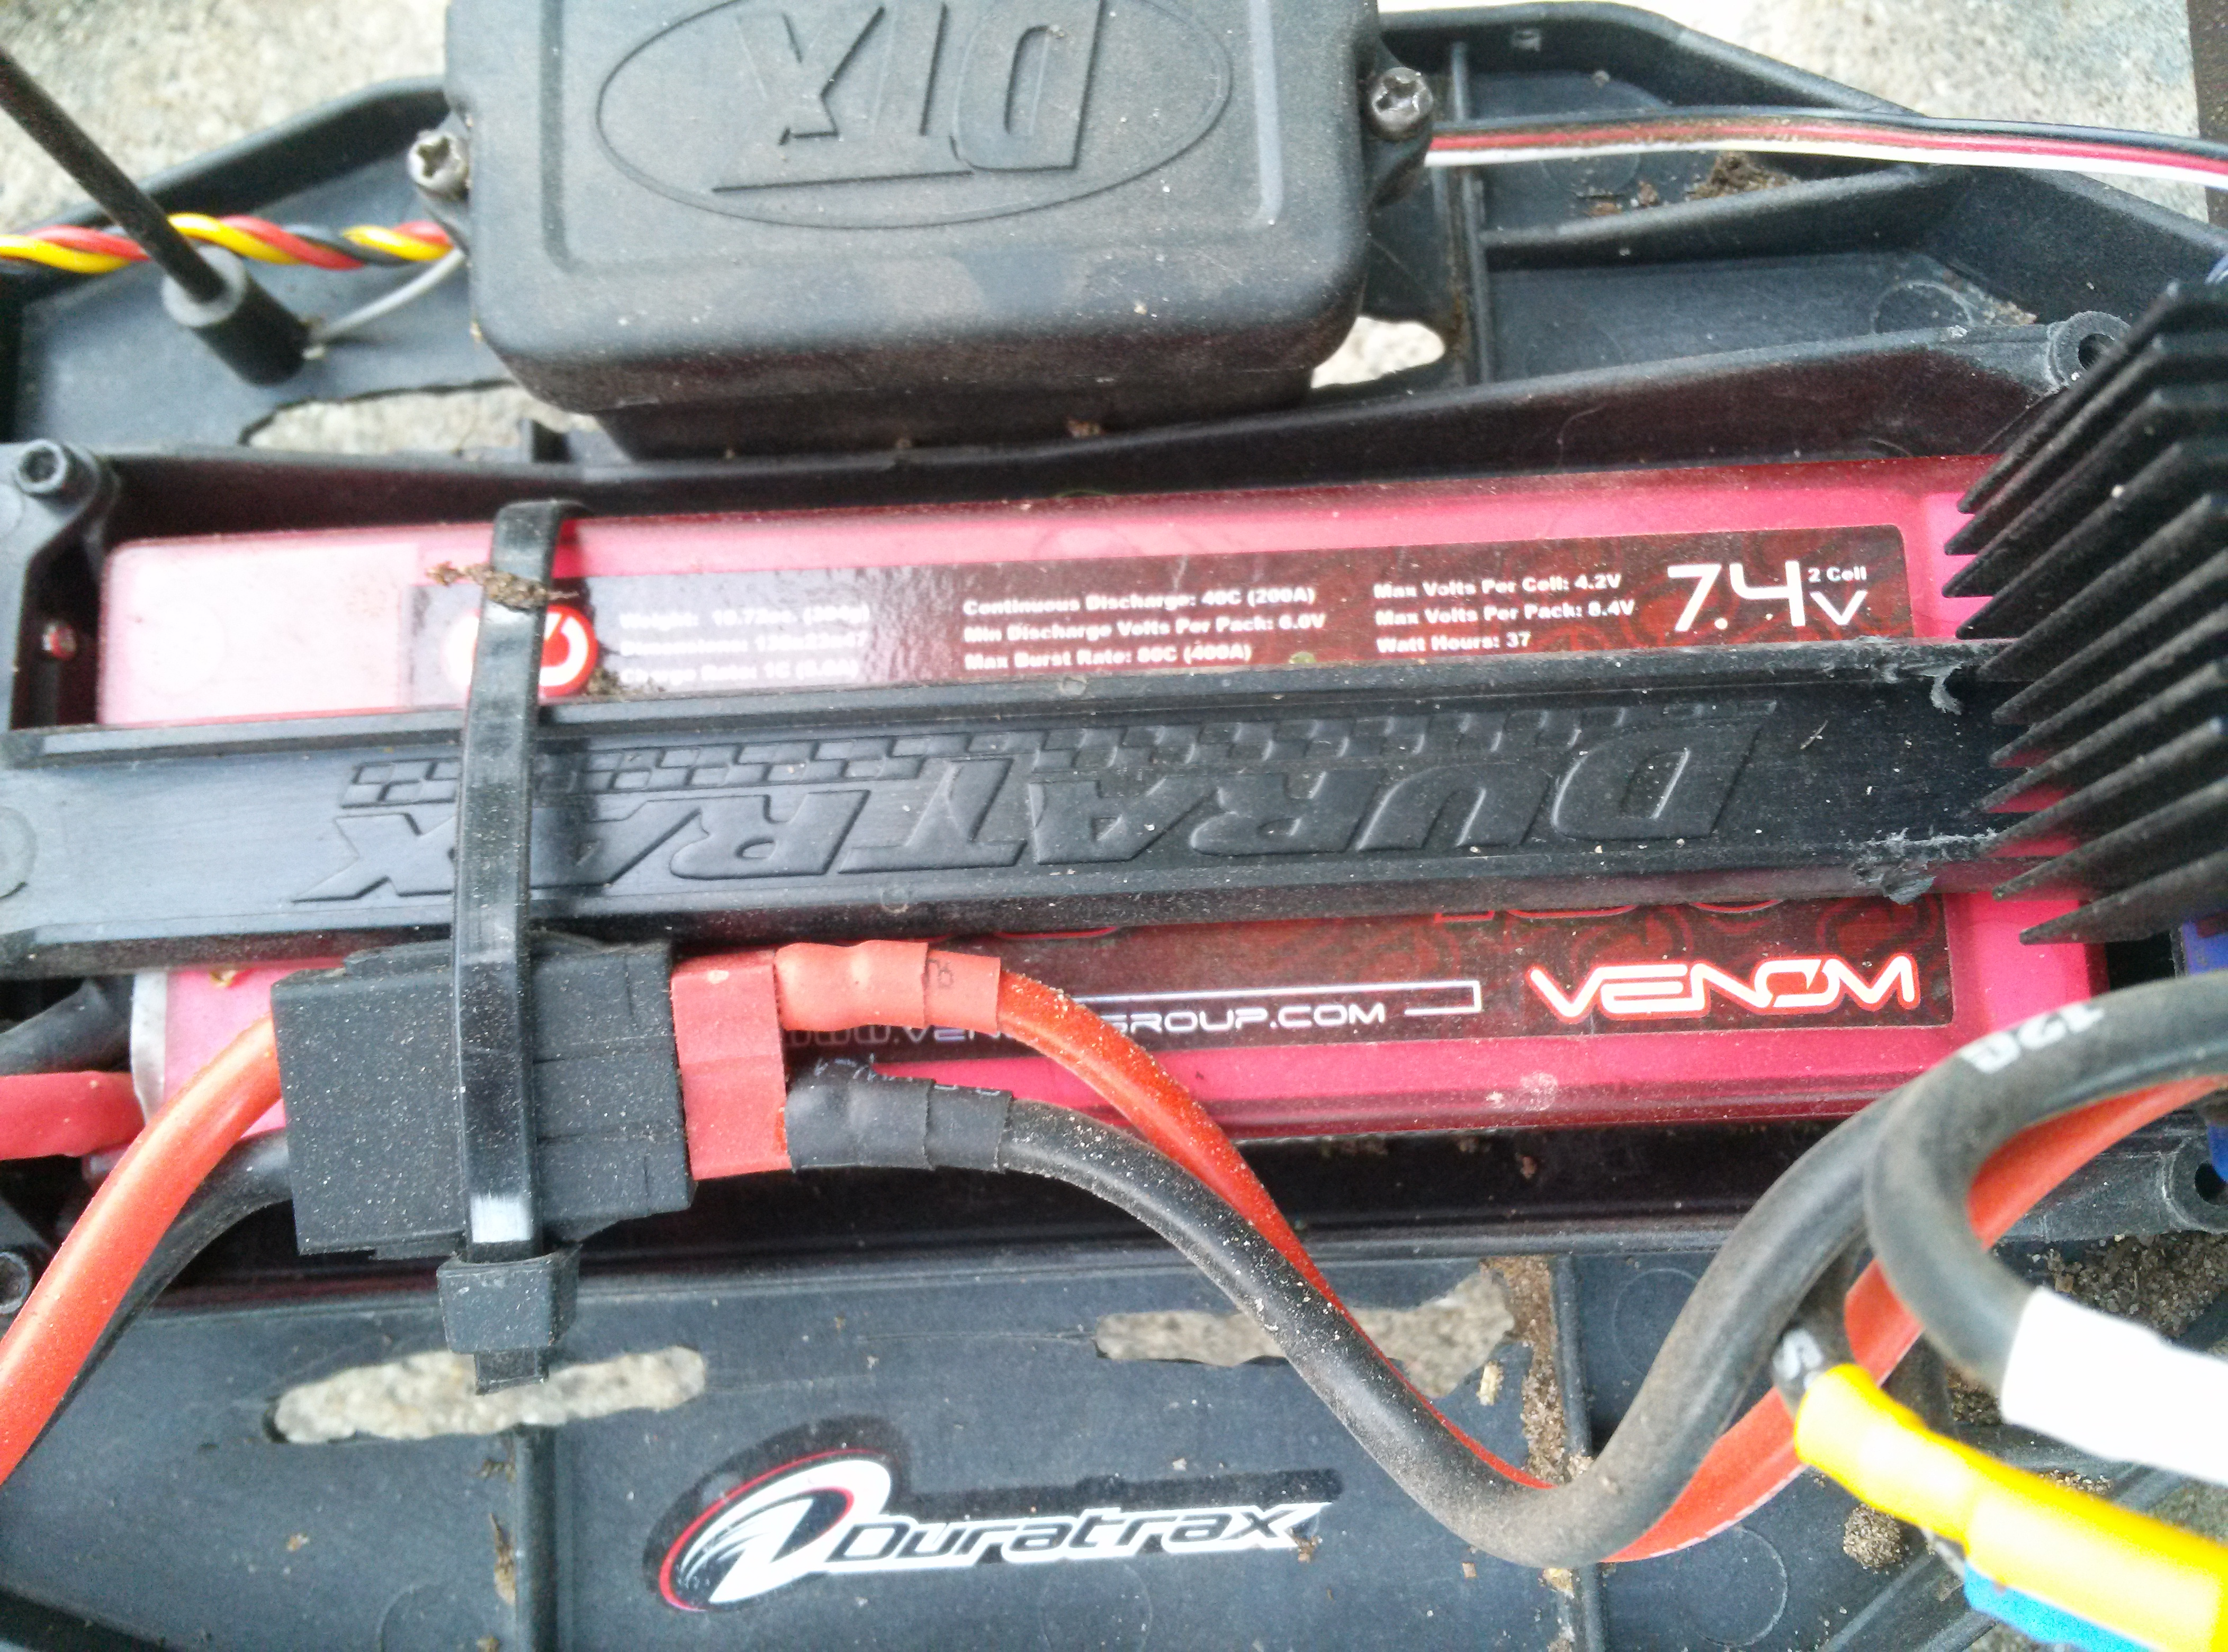 The Evader Coalition Tec Part 2 Page 81 Rcu Forums Crazy Electrical Wiring It Drives With Power Torque Not Fastest A 16t Pinion But Enough To Start Should Be Good For Doing Track Racing Or